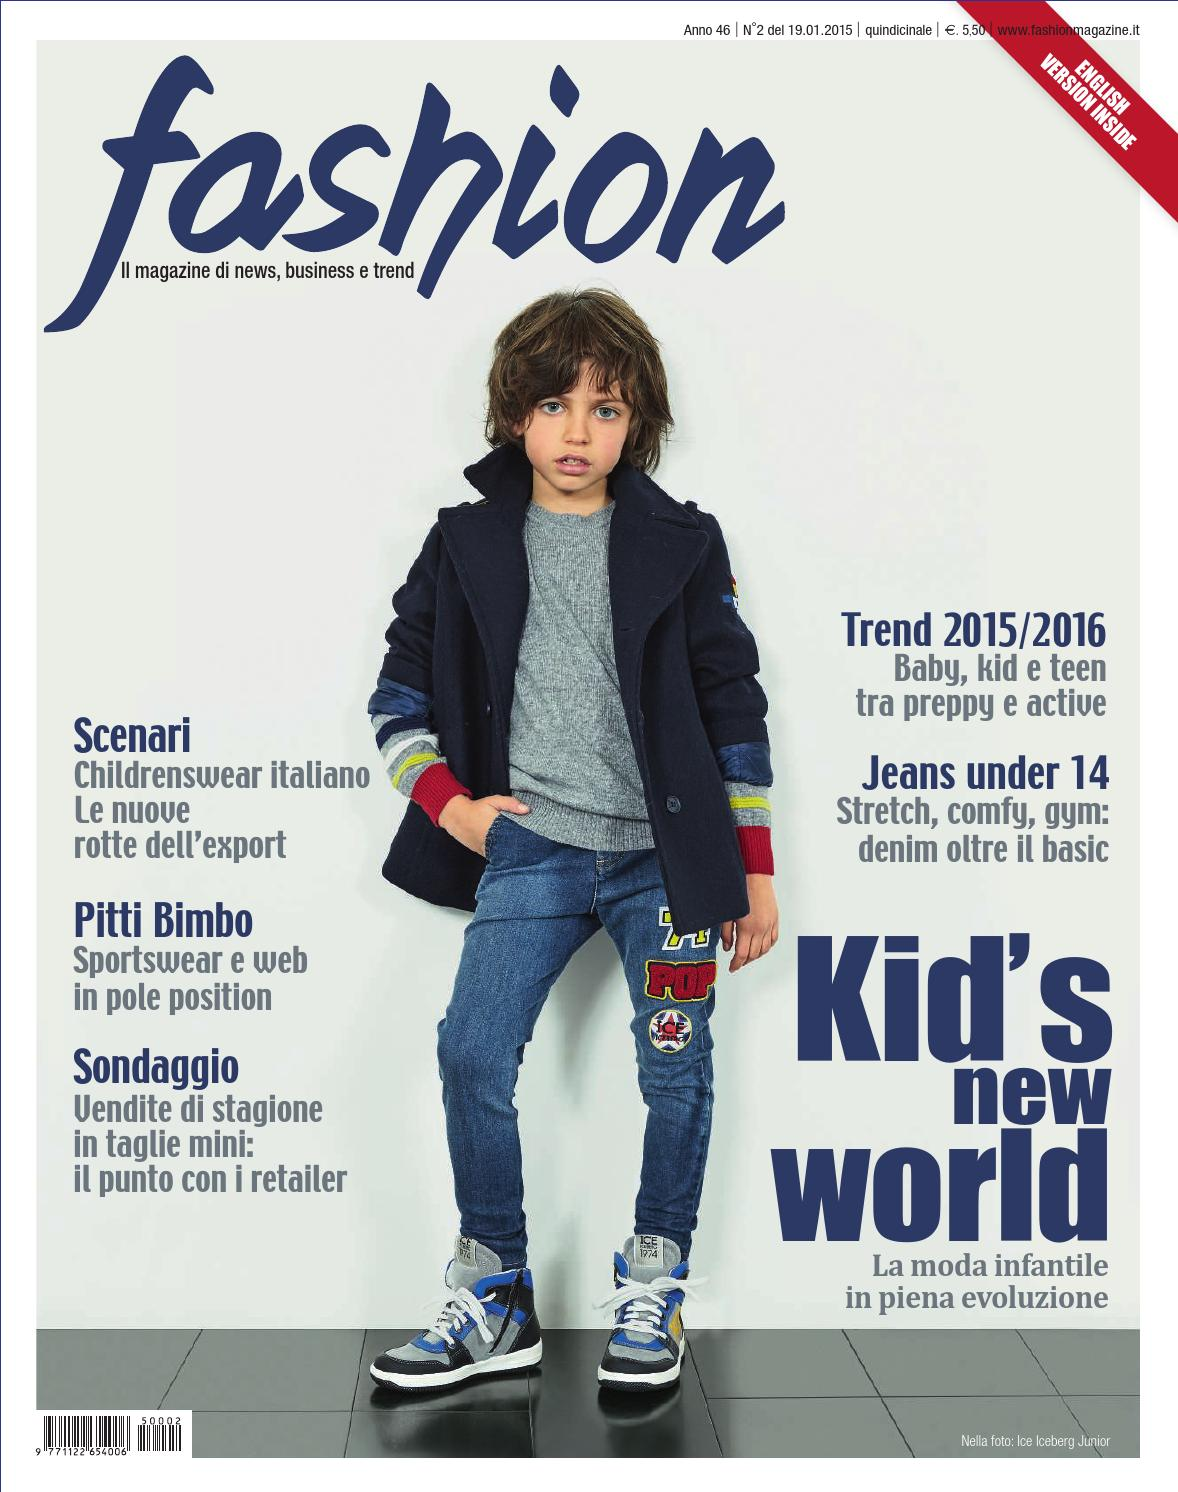 d09bdeff78be Fashion 2 2015 by Fashionmagazine - issuu